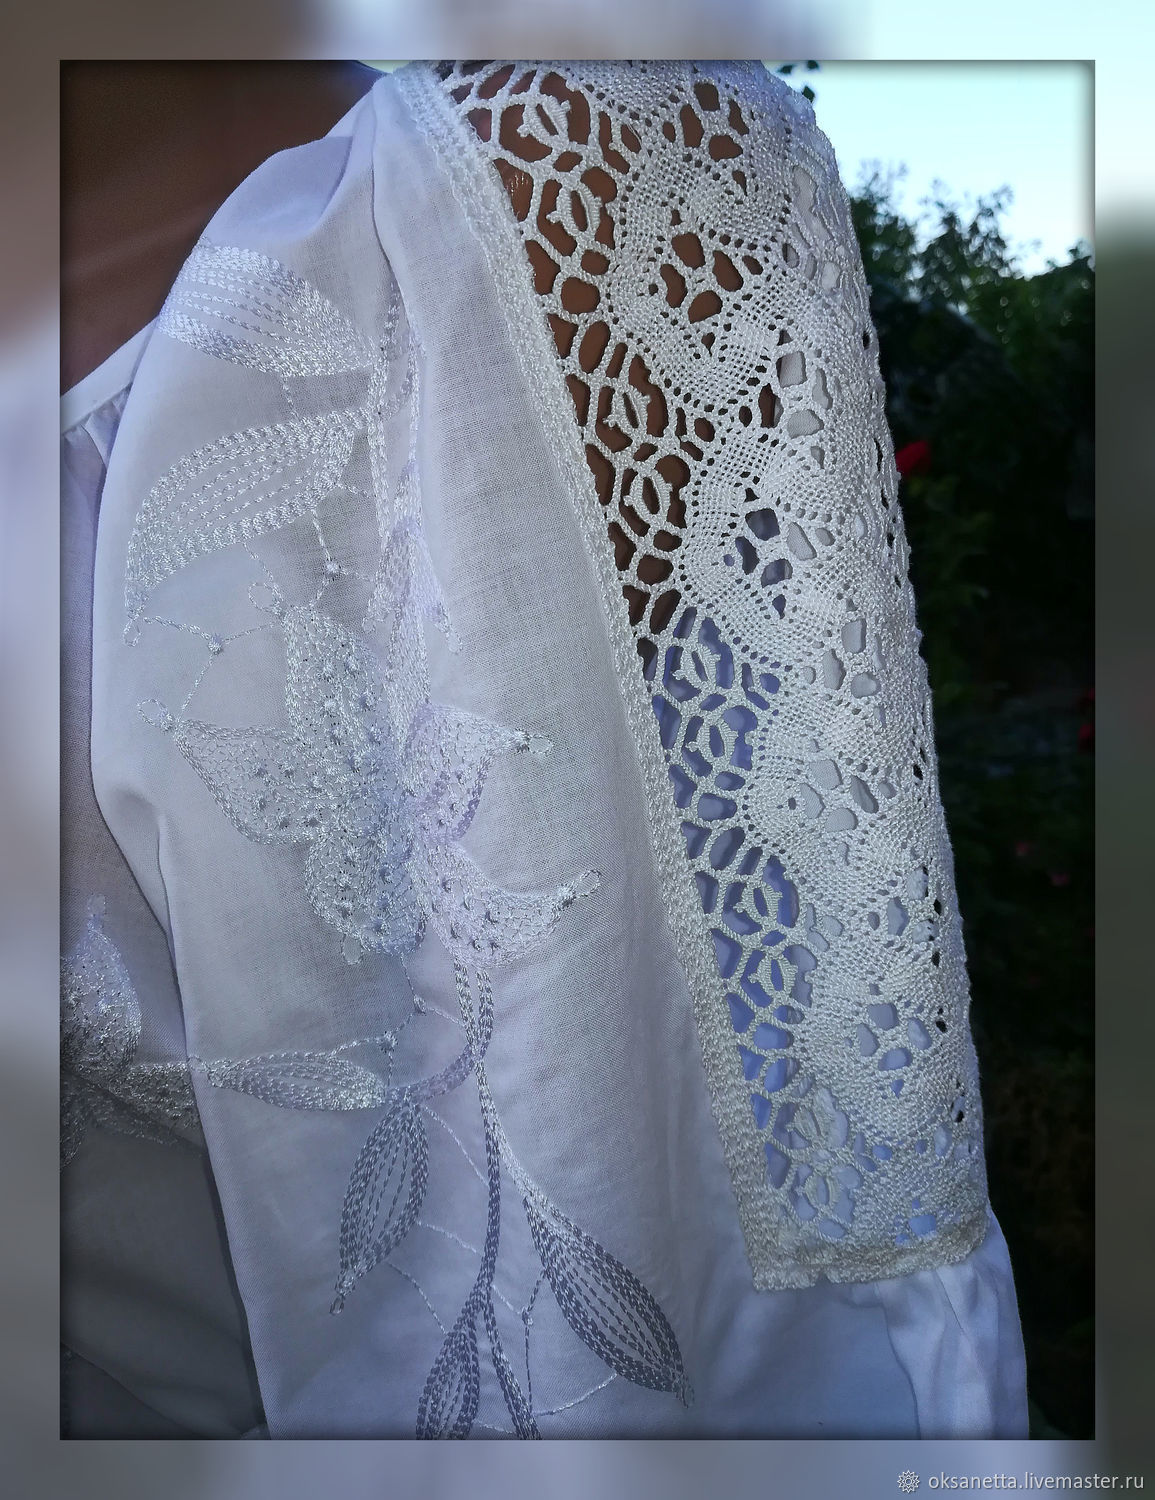 Embroidered shirt from Batista 'Delicate Lily of the valley', Blouses, Zaporozhye,  Фото №1